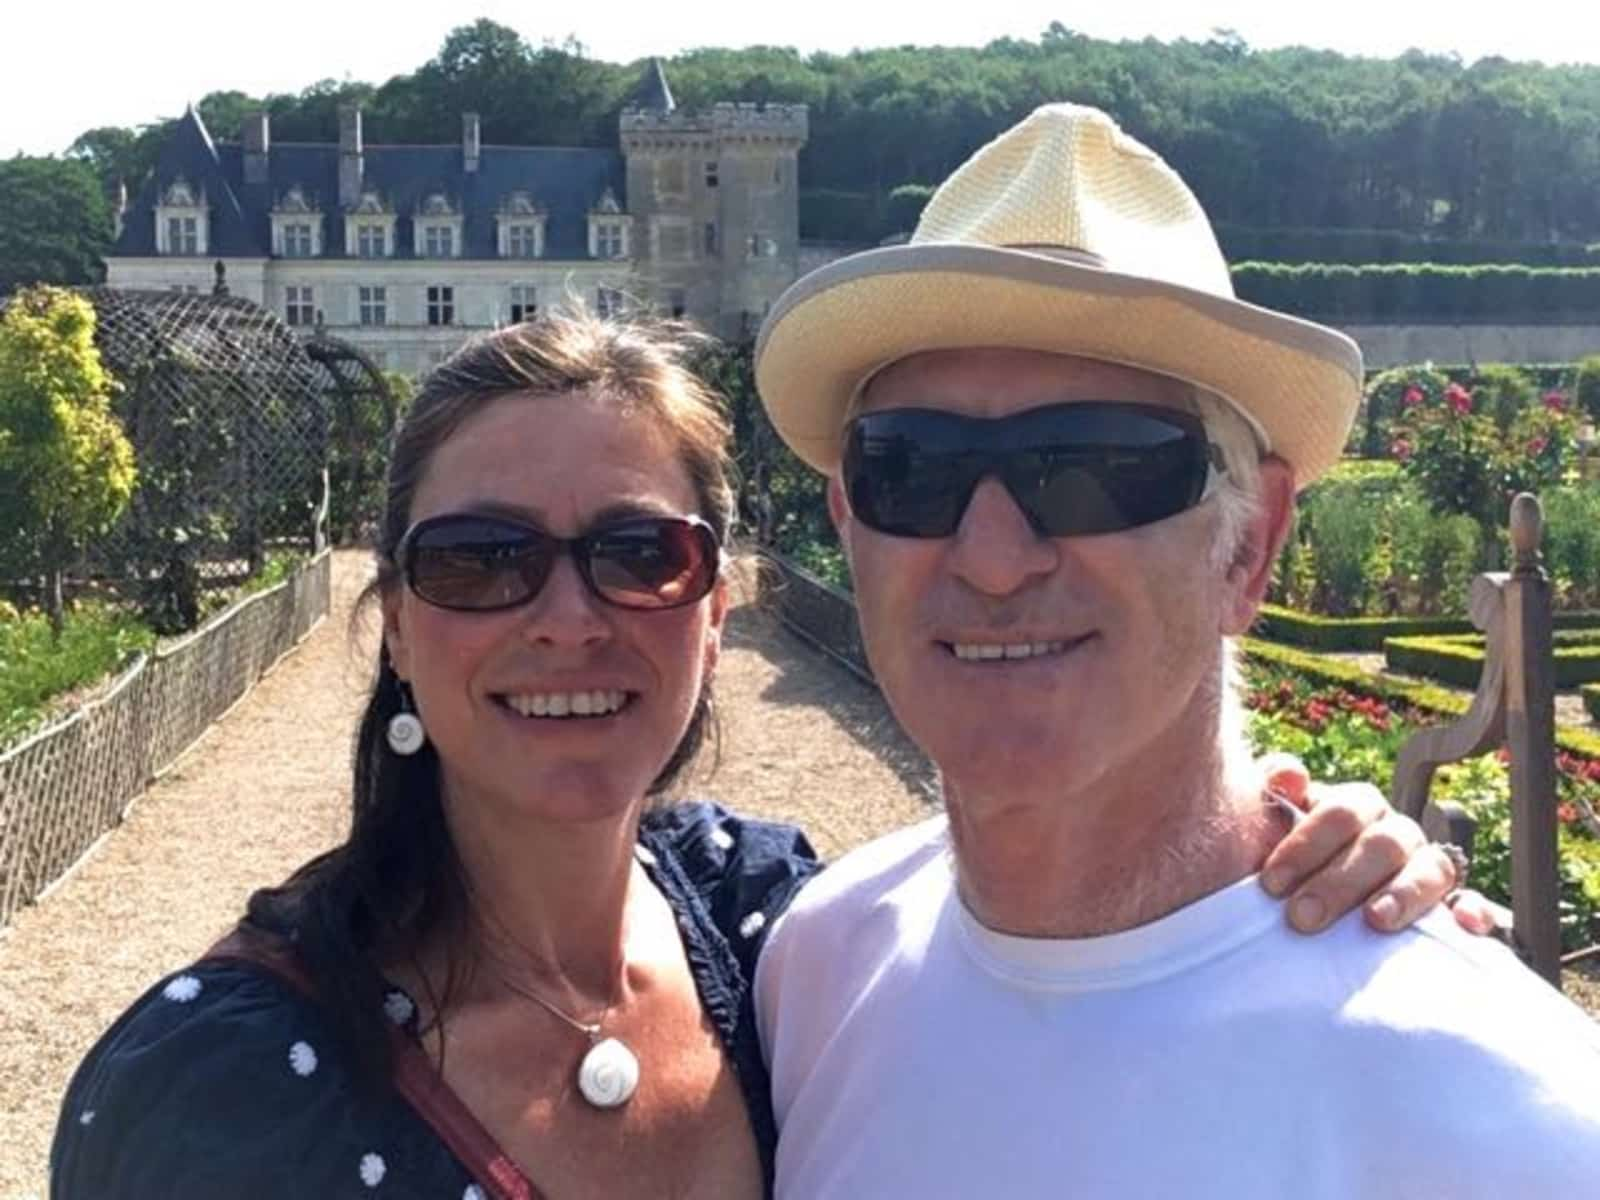 Sylvia & Neil from Bourg-Saint-Maurice, France